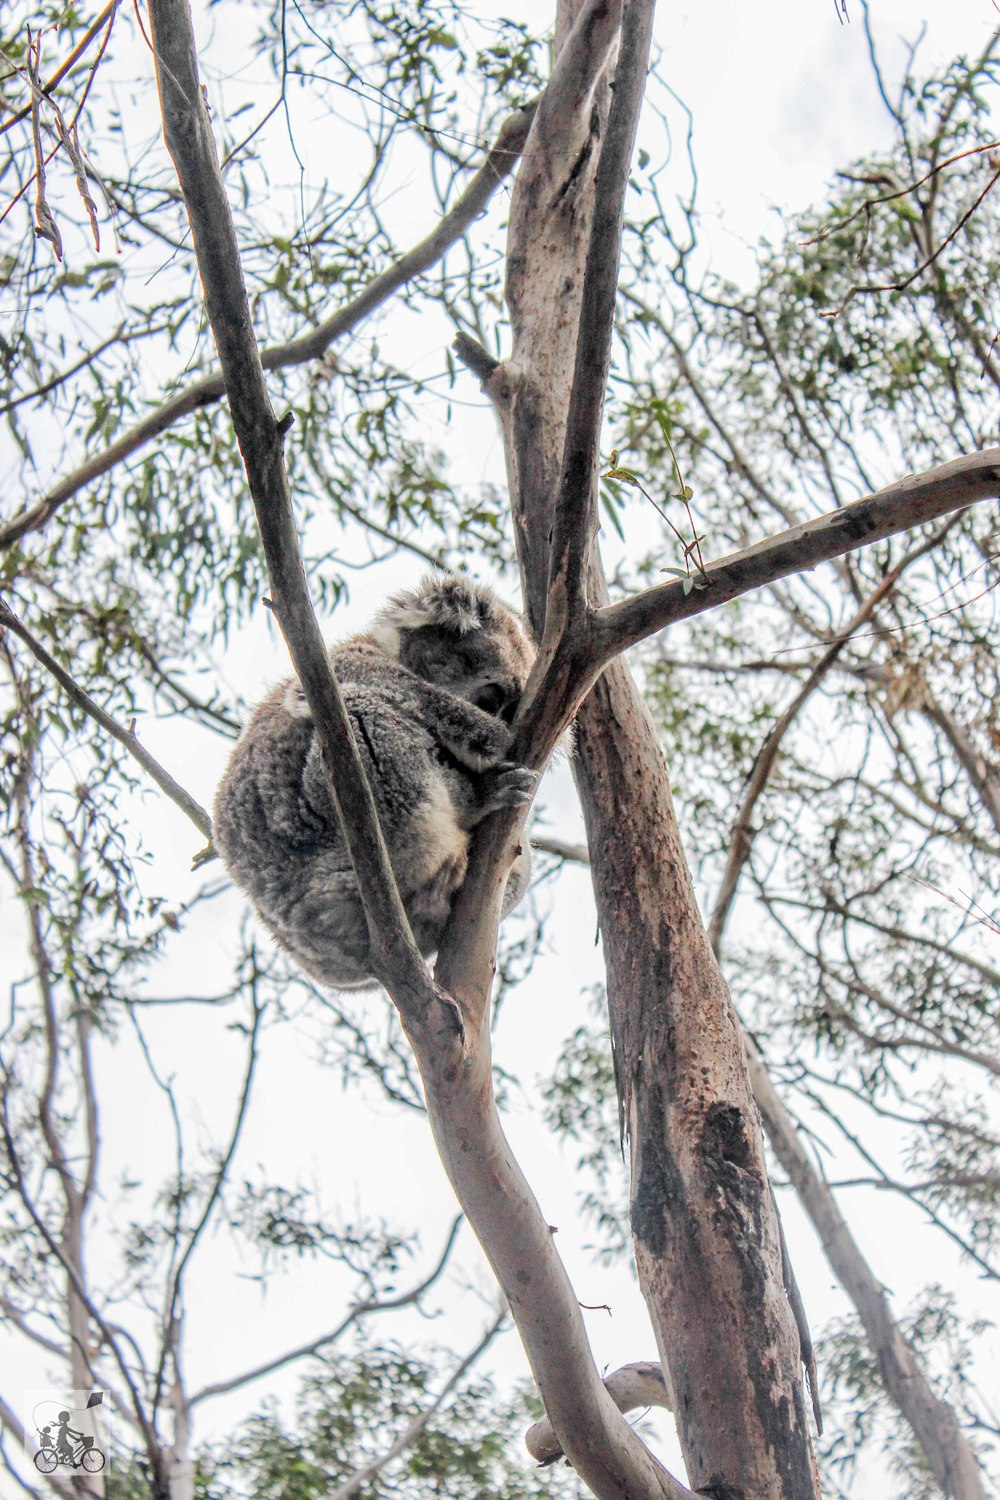 Mamma Knows East - Koala Conservation Centre